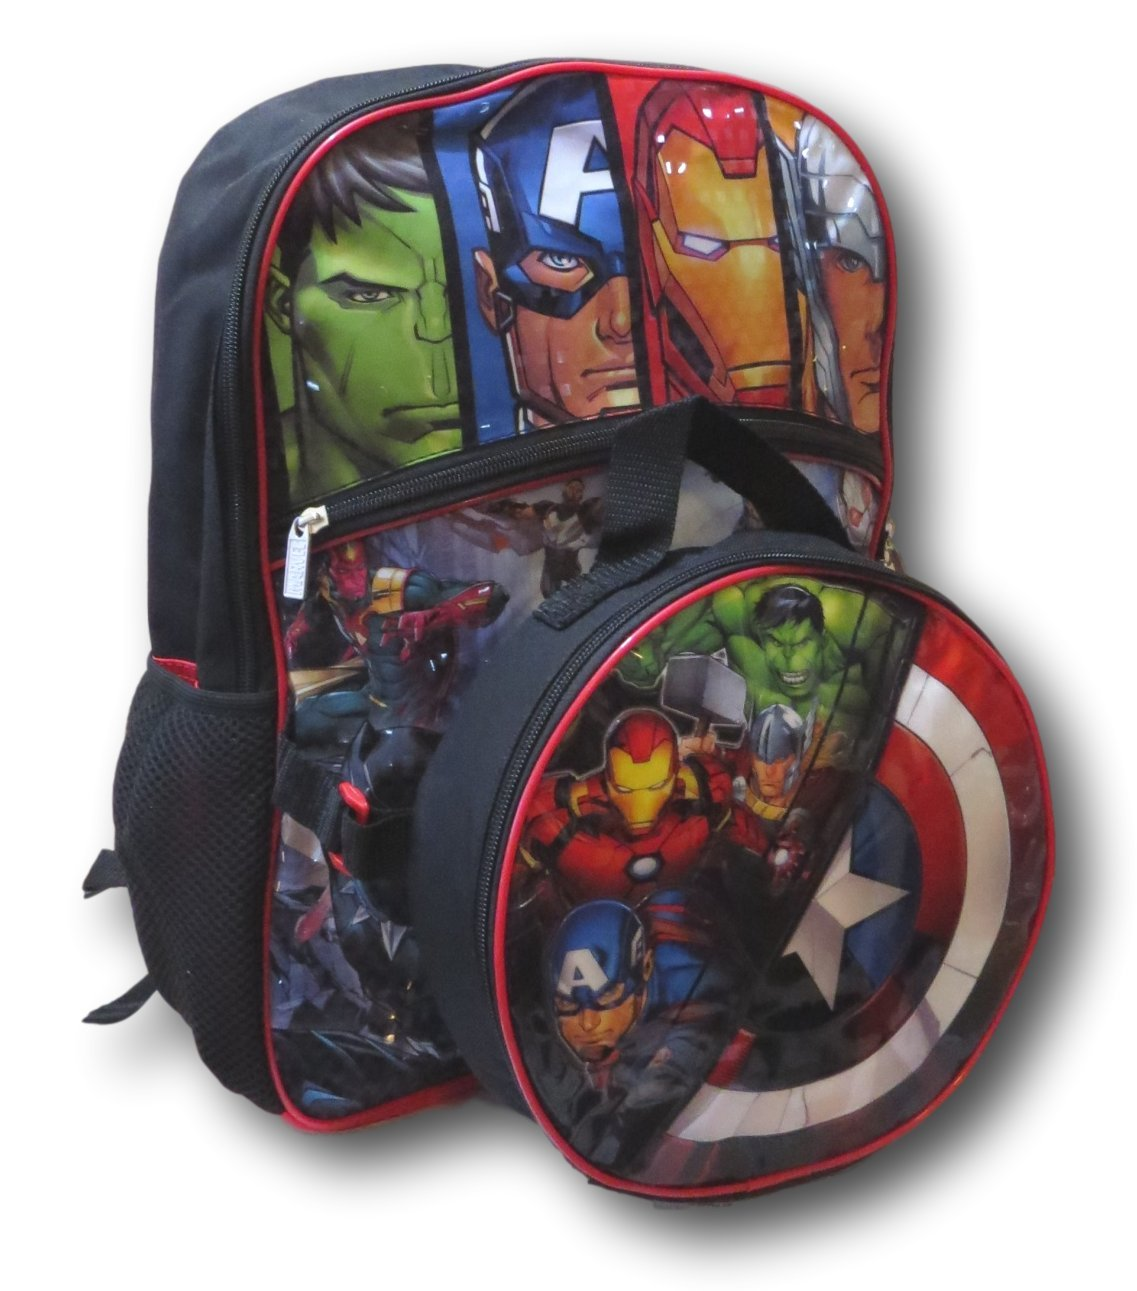 Marvel Avengers Backpack with Detachable Captain America Shield Shaped Insulated Lunch Bag